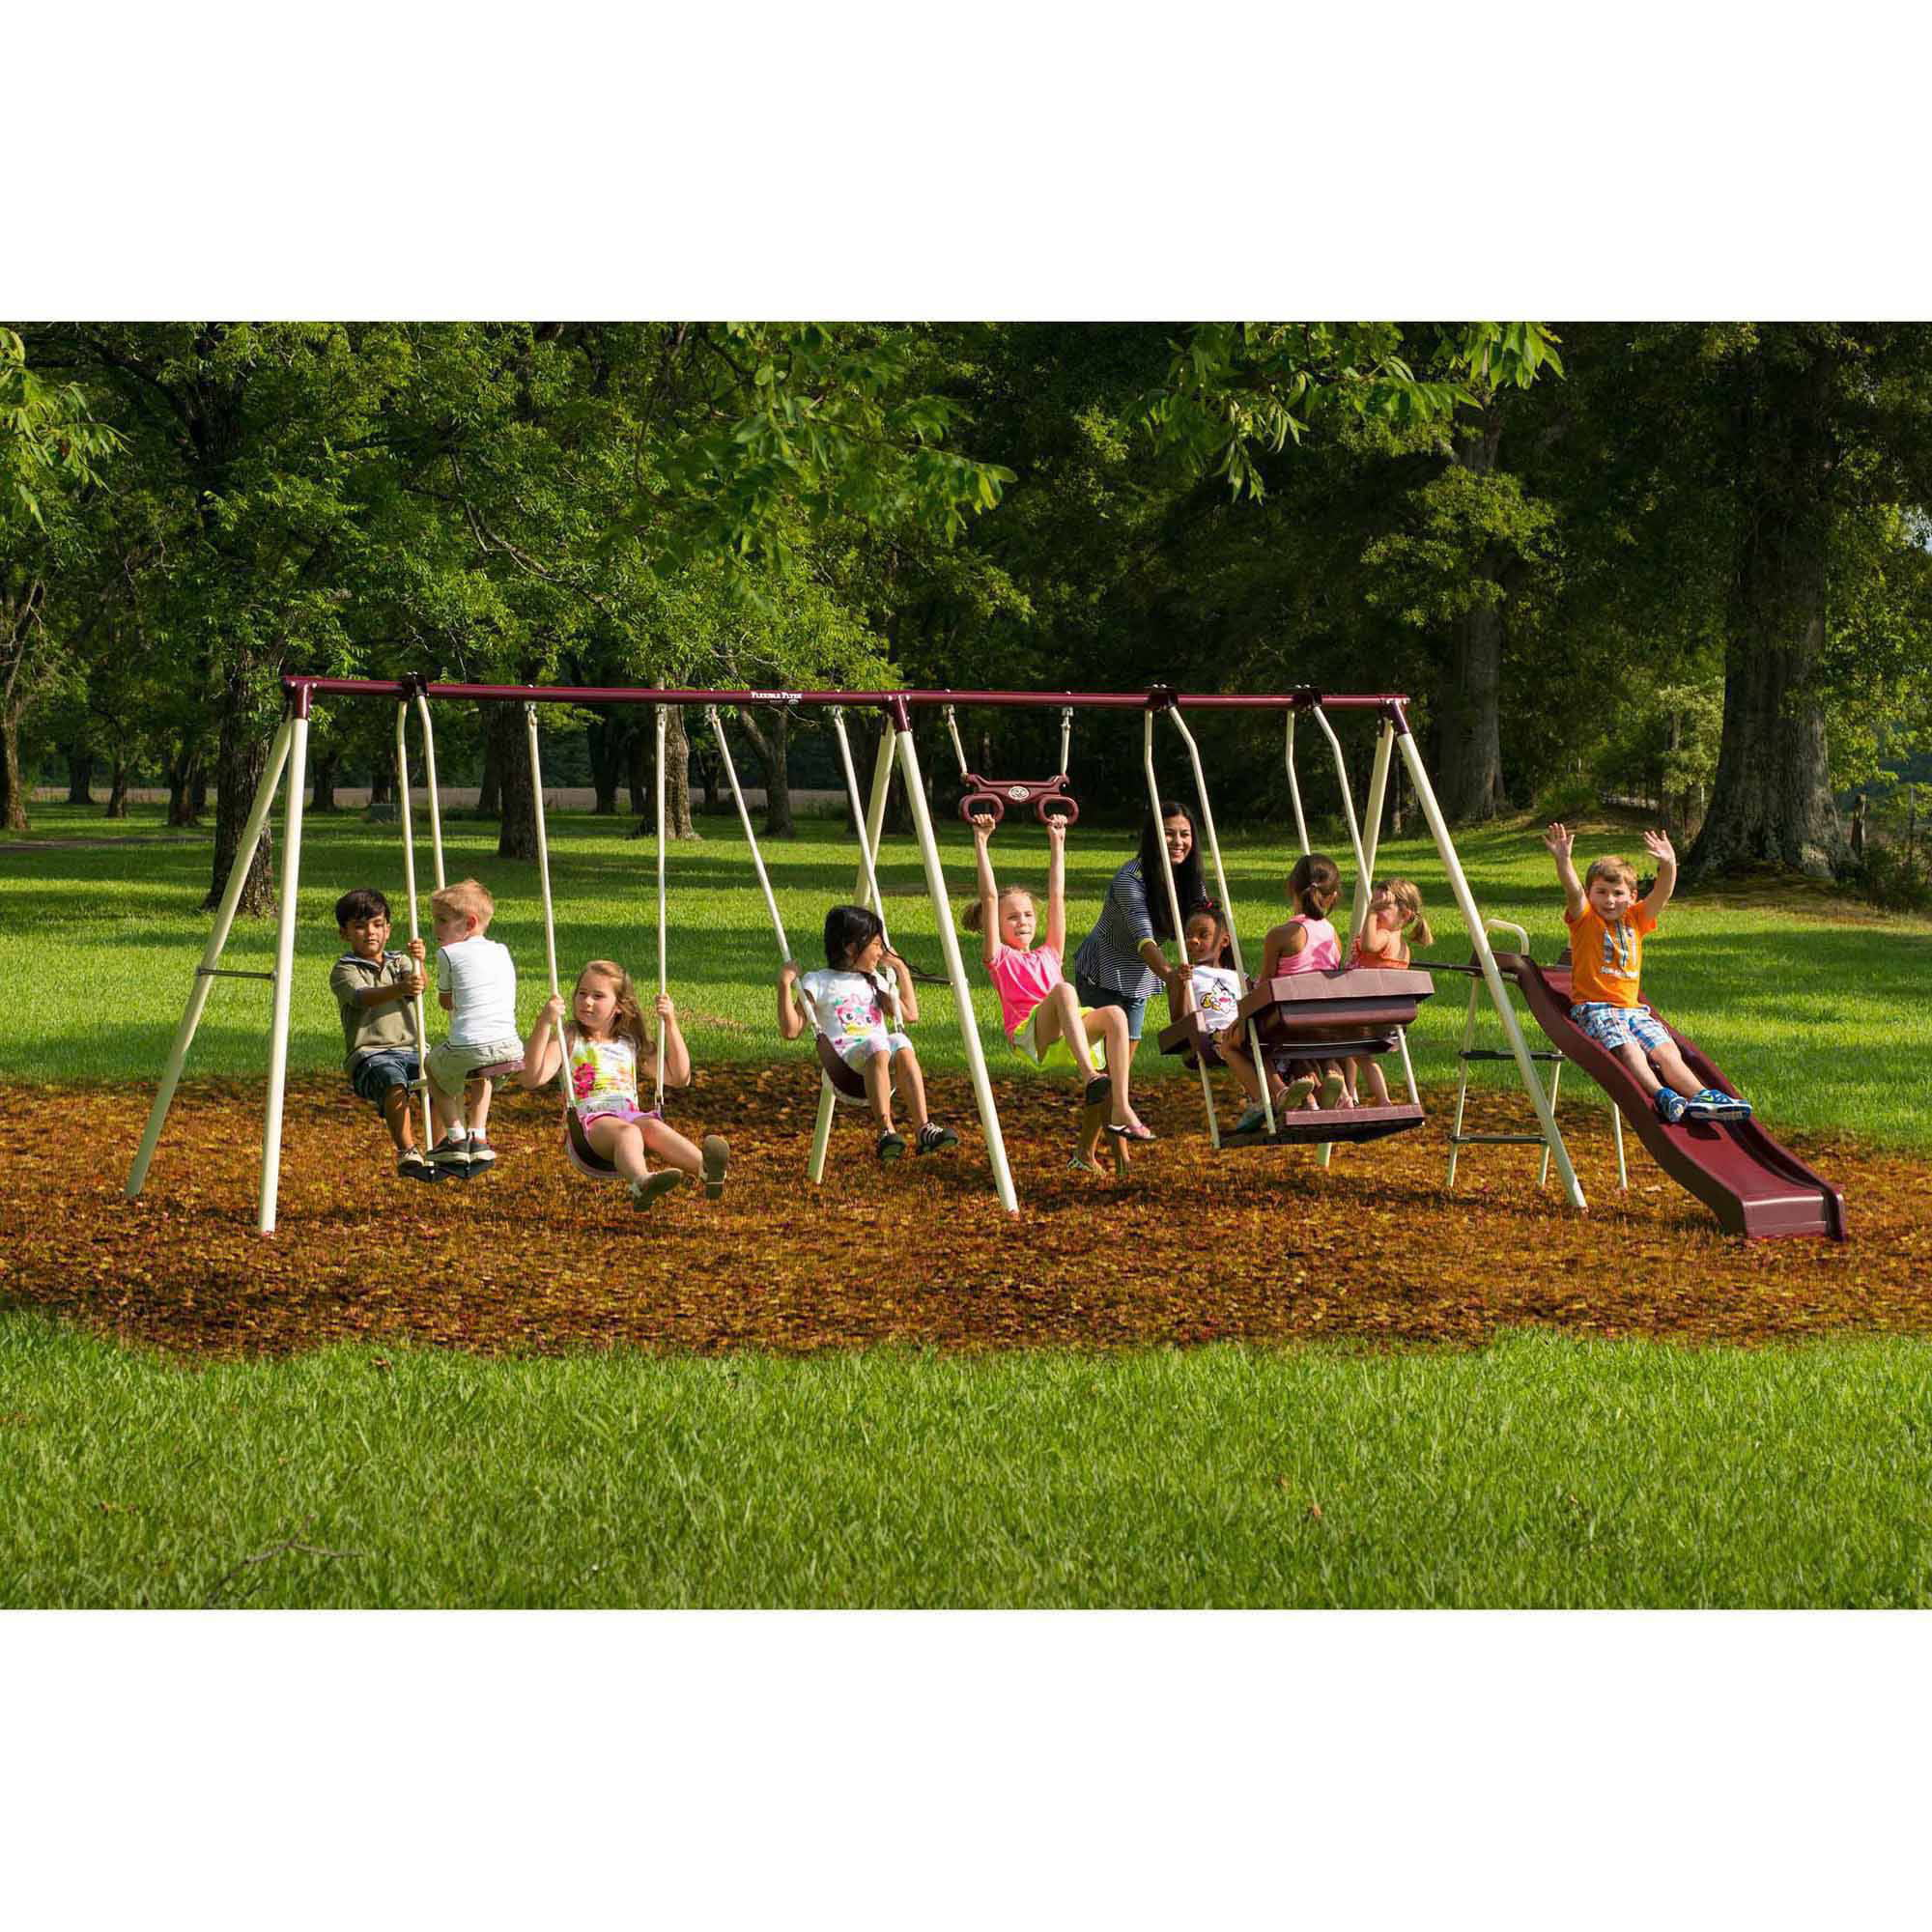 Big Backyard Ashberry II Swing Set Walmartcom - Backyard playground equipment